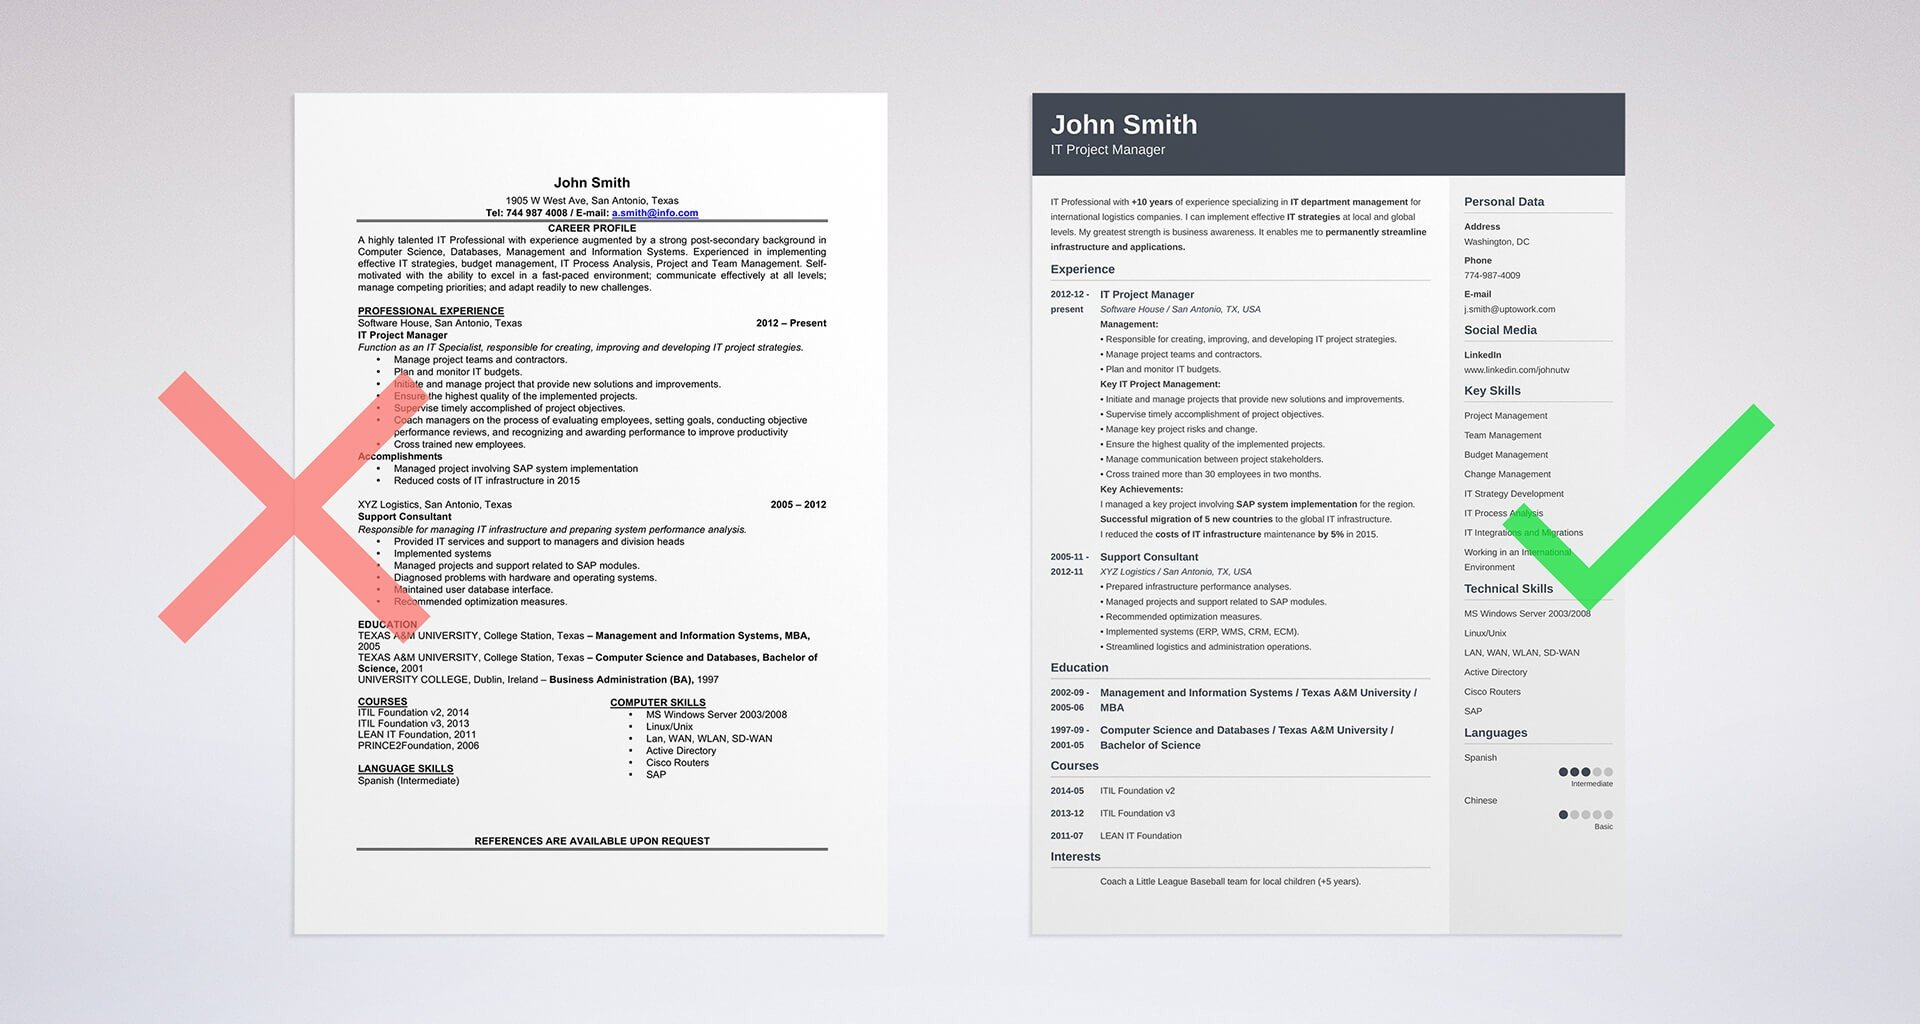 20 resume objectives examples use them on your resume tips 20 resume objectives examples use them on your resume tips